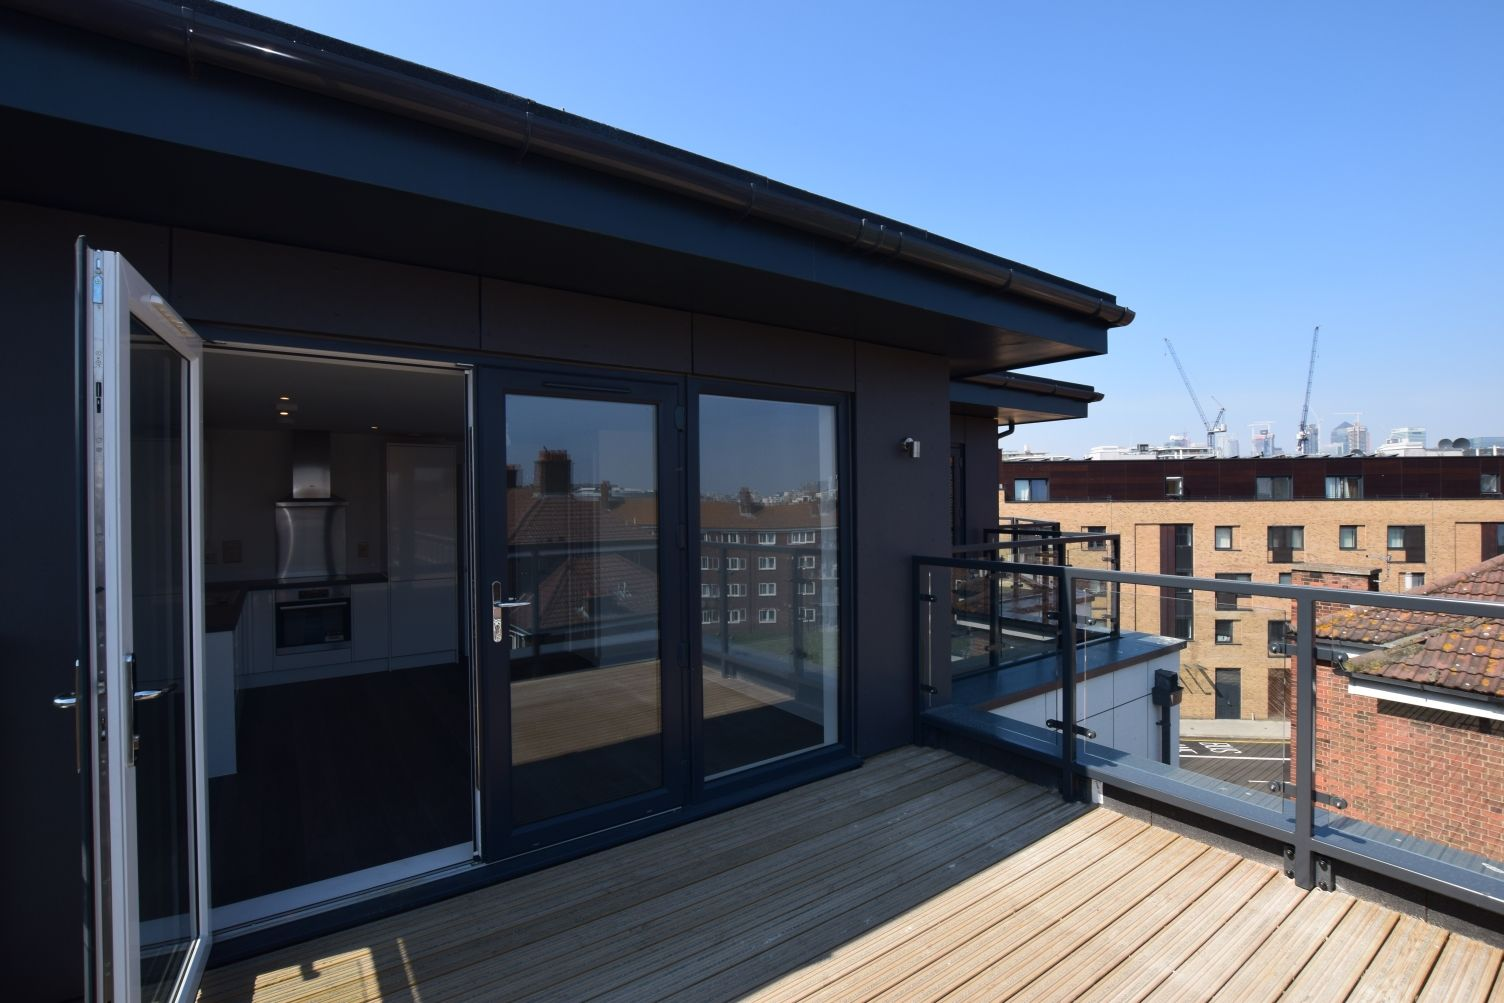 Property photo 1 of 9. Roof Terrace